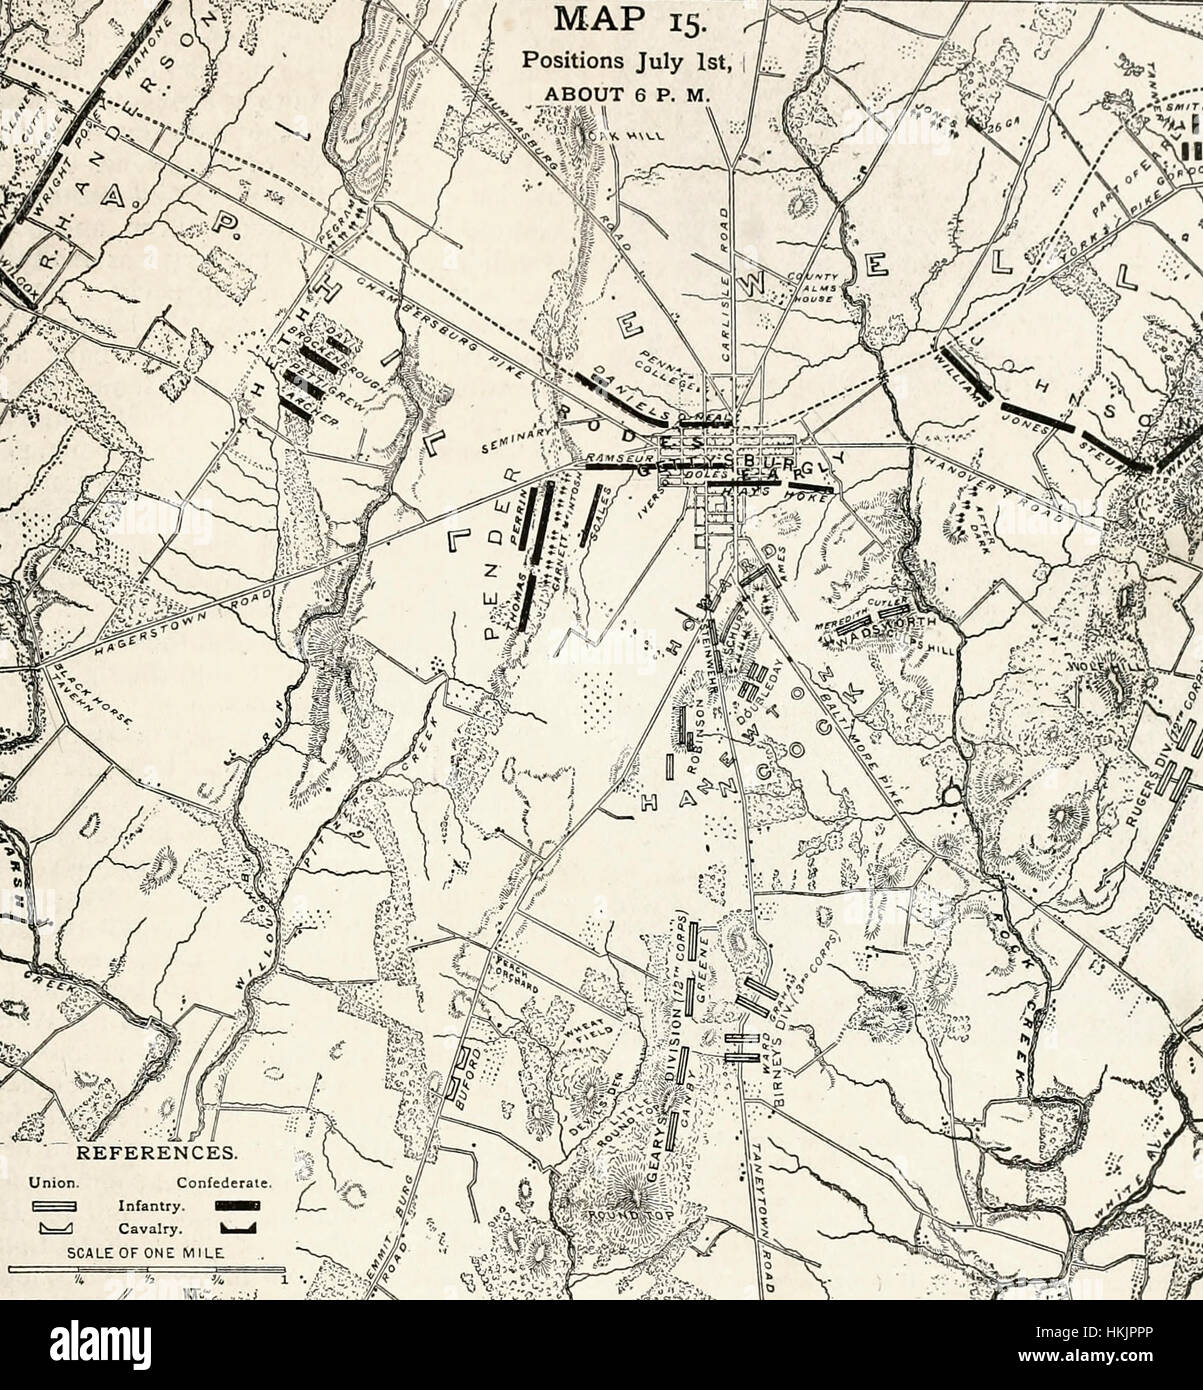 Map Of First Day At Battle Of Gettysburg USA Civil War Stock - Battle of gettysburg us map